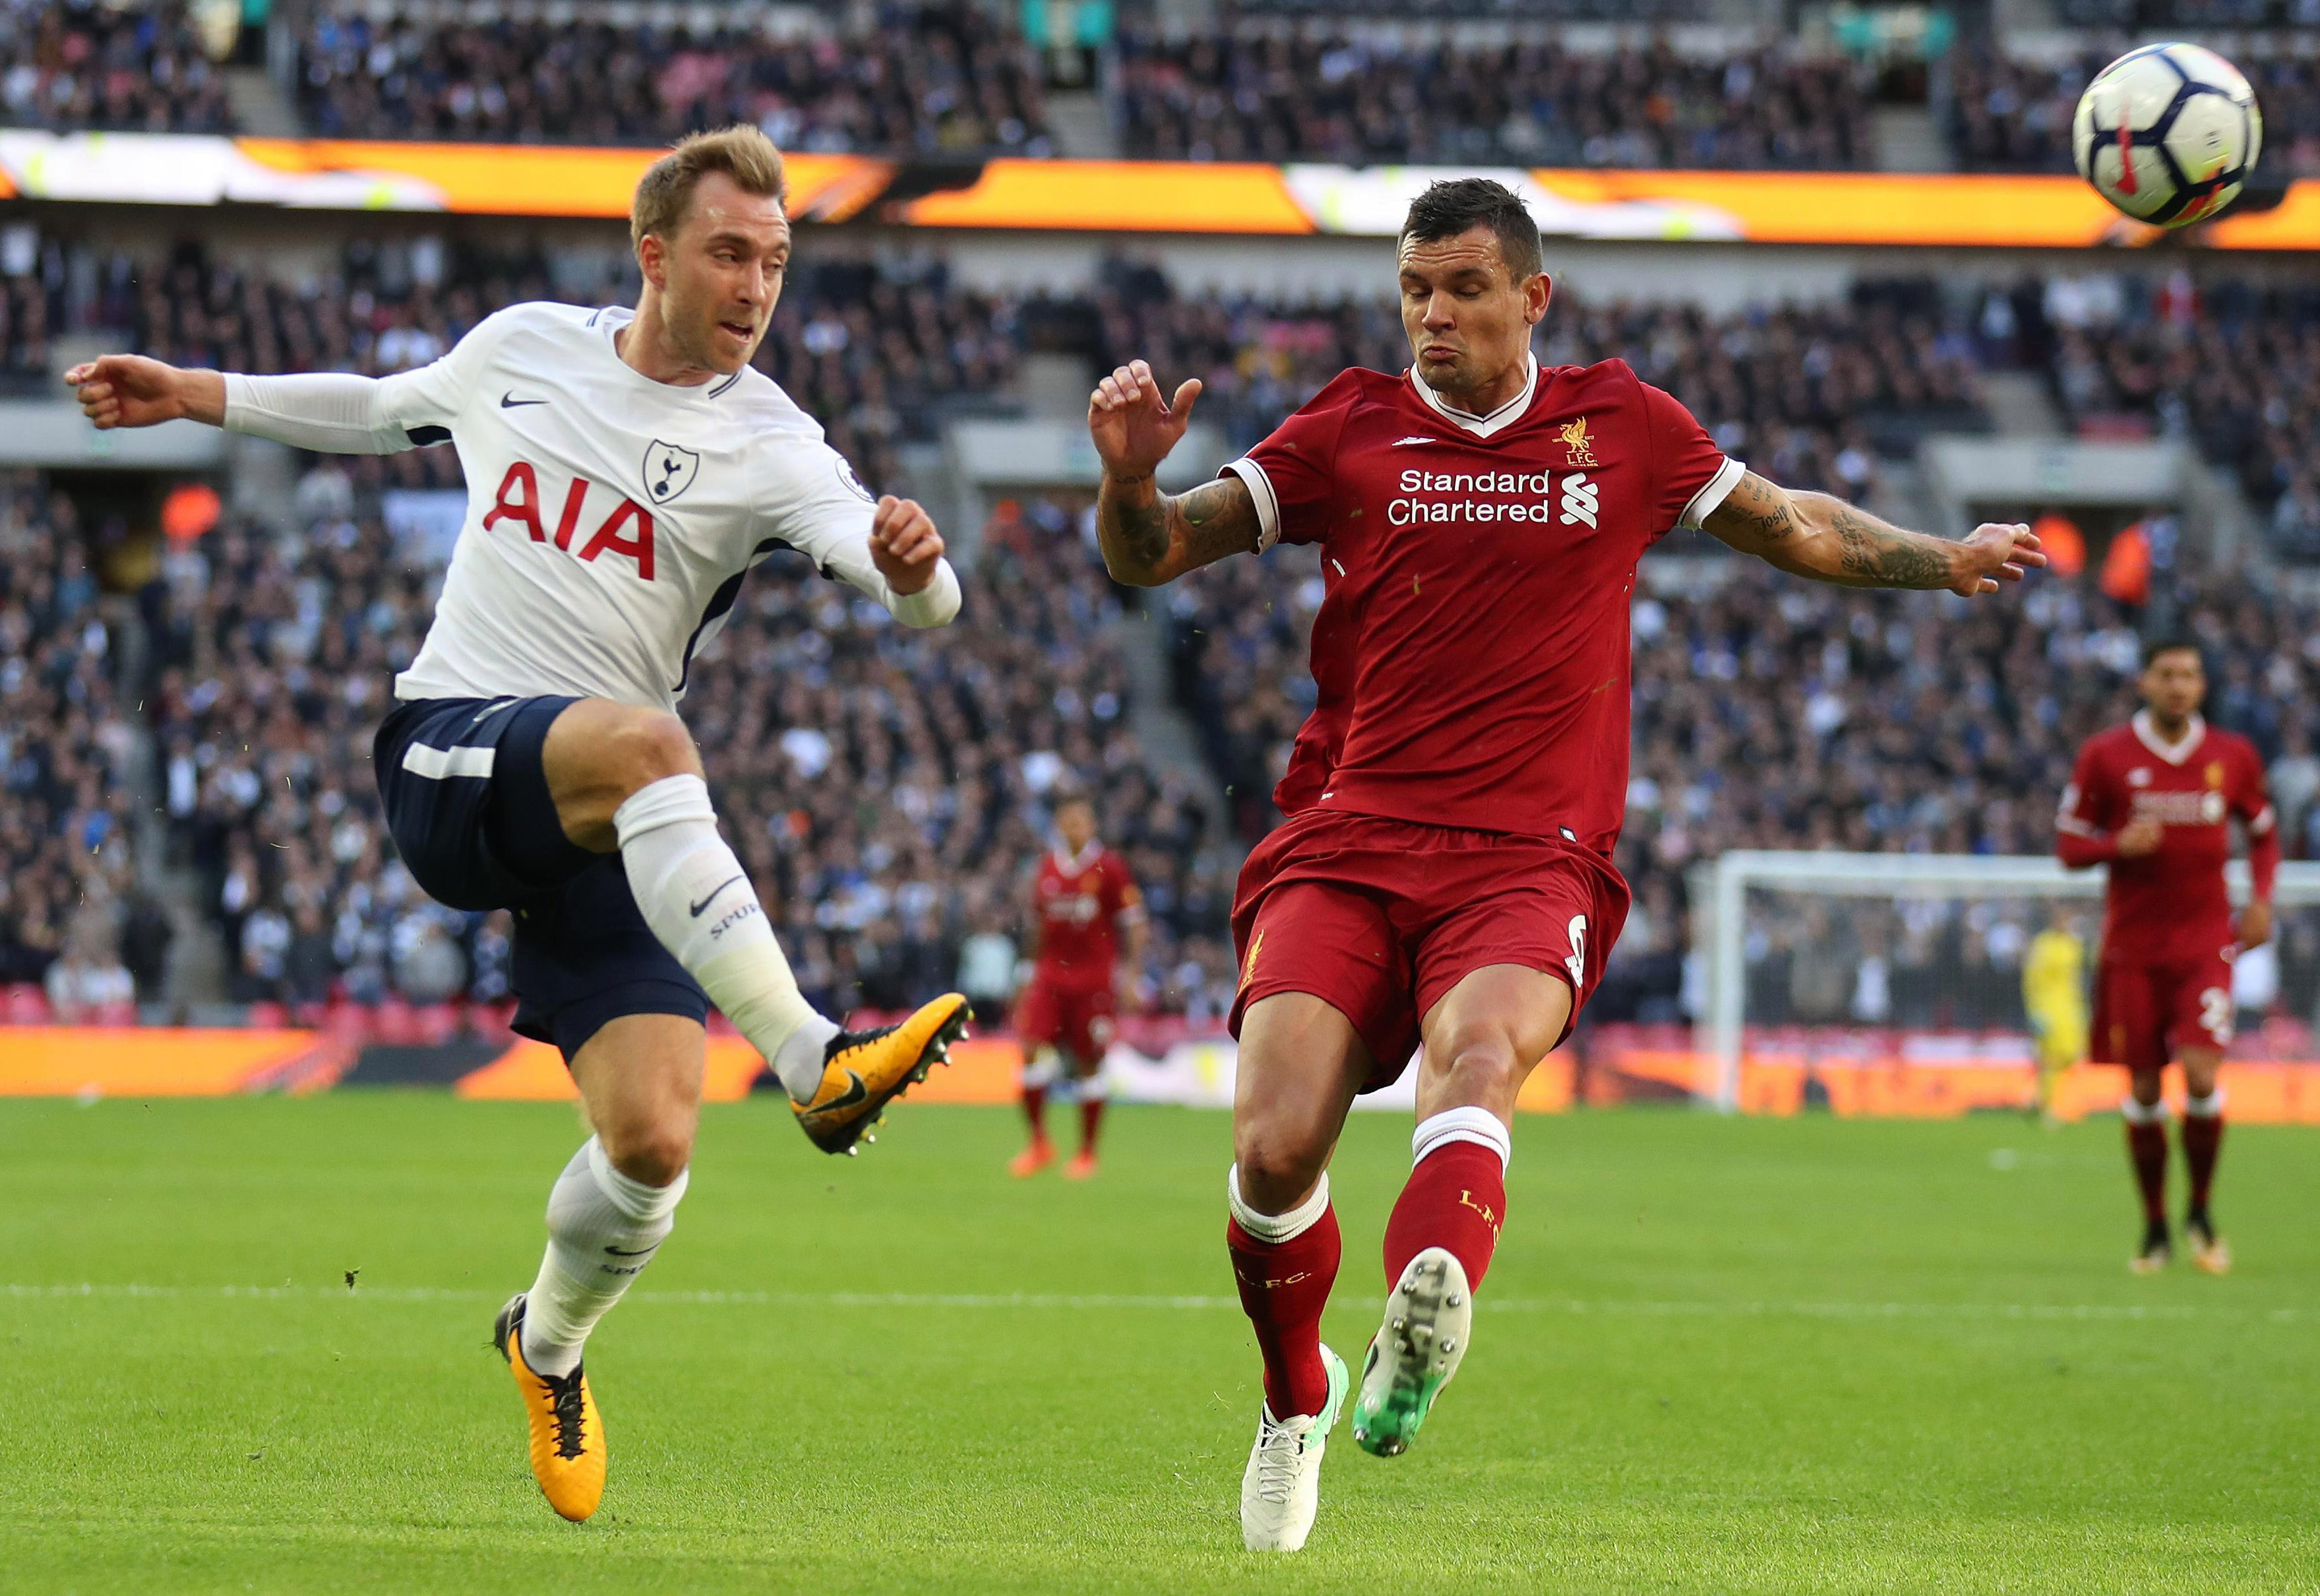 Christian Eriksen is another major threat to Liverpool at Anfield